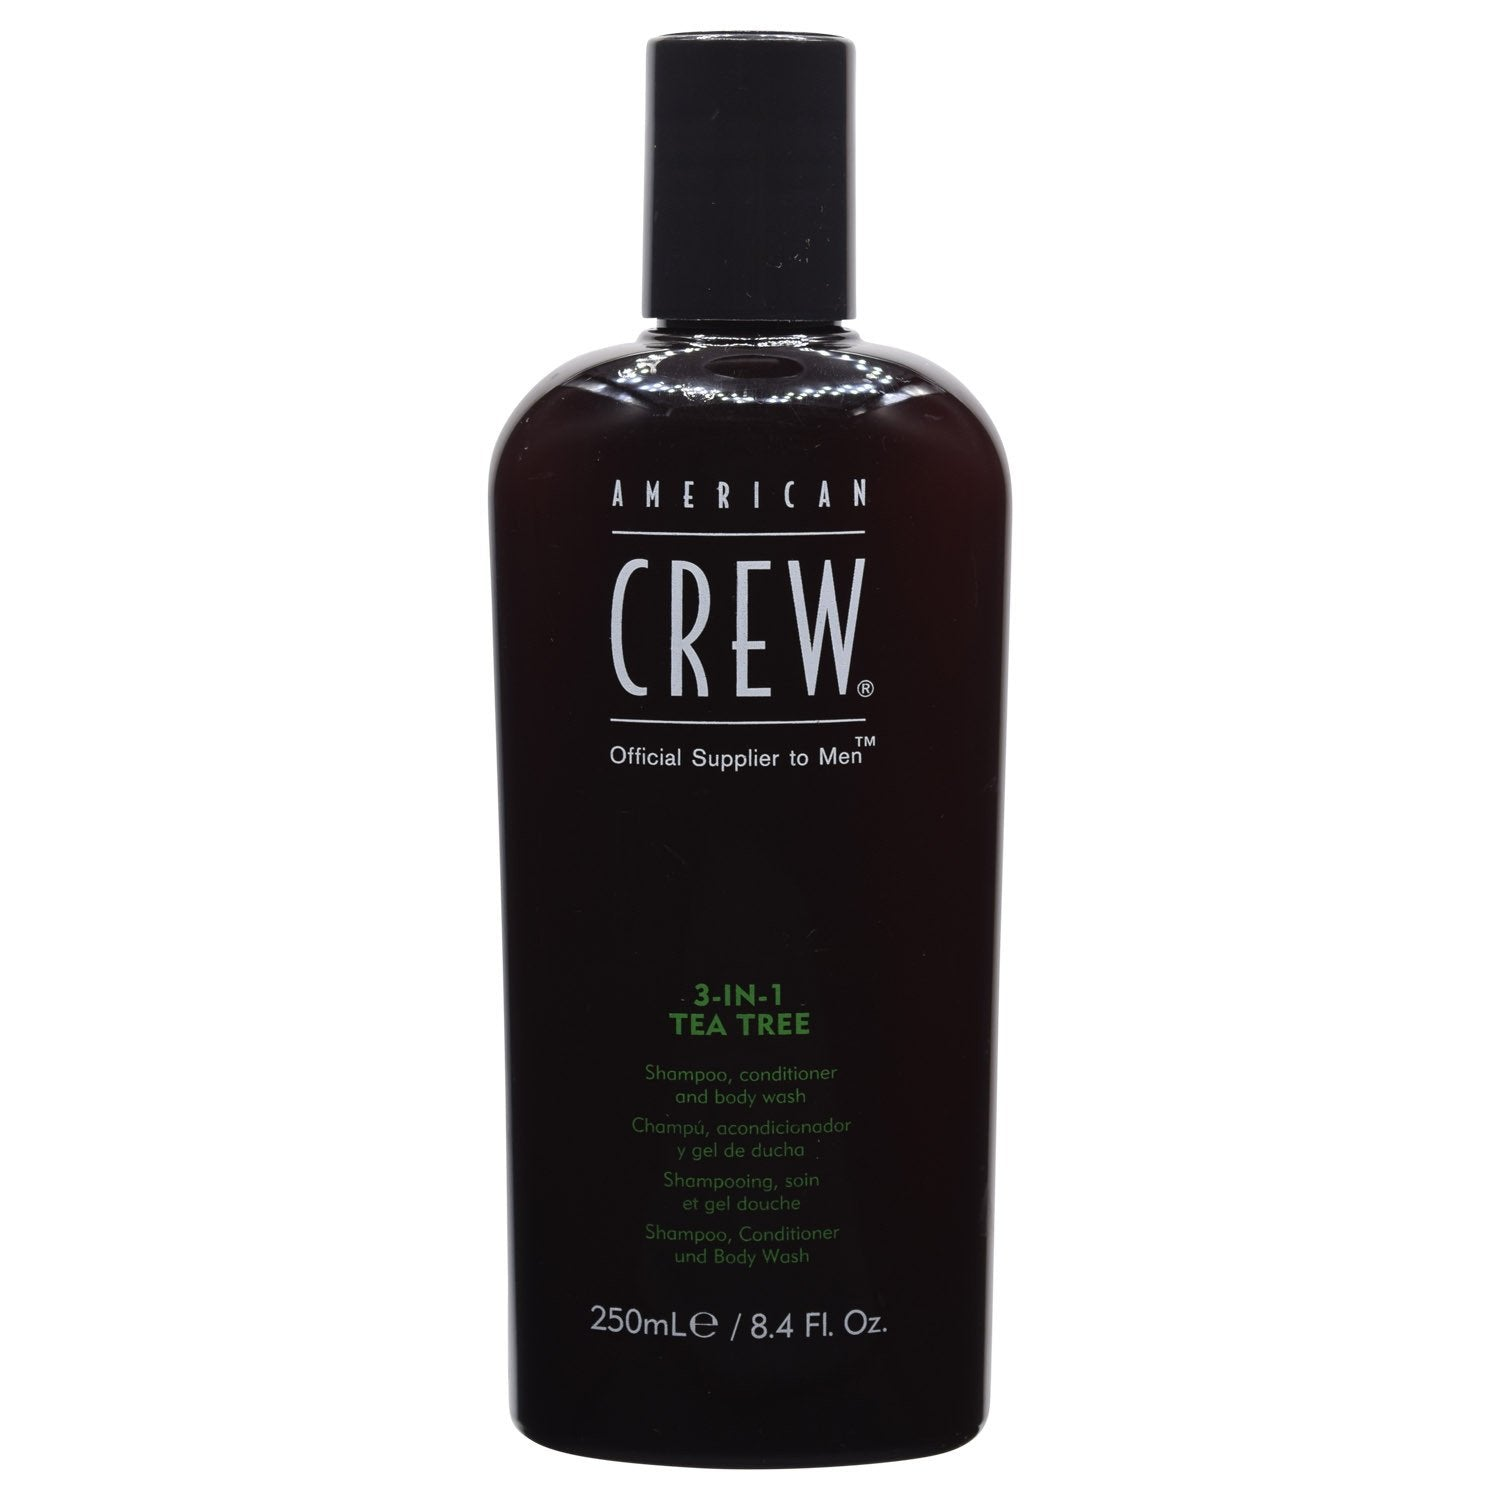 AMERICAN CREW ~ 3-IN-1 TEA TREE SHAMPOO CONDITIONER BODY WASH ~ 8.4 OZ